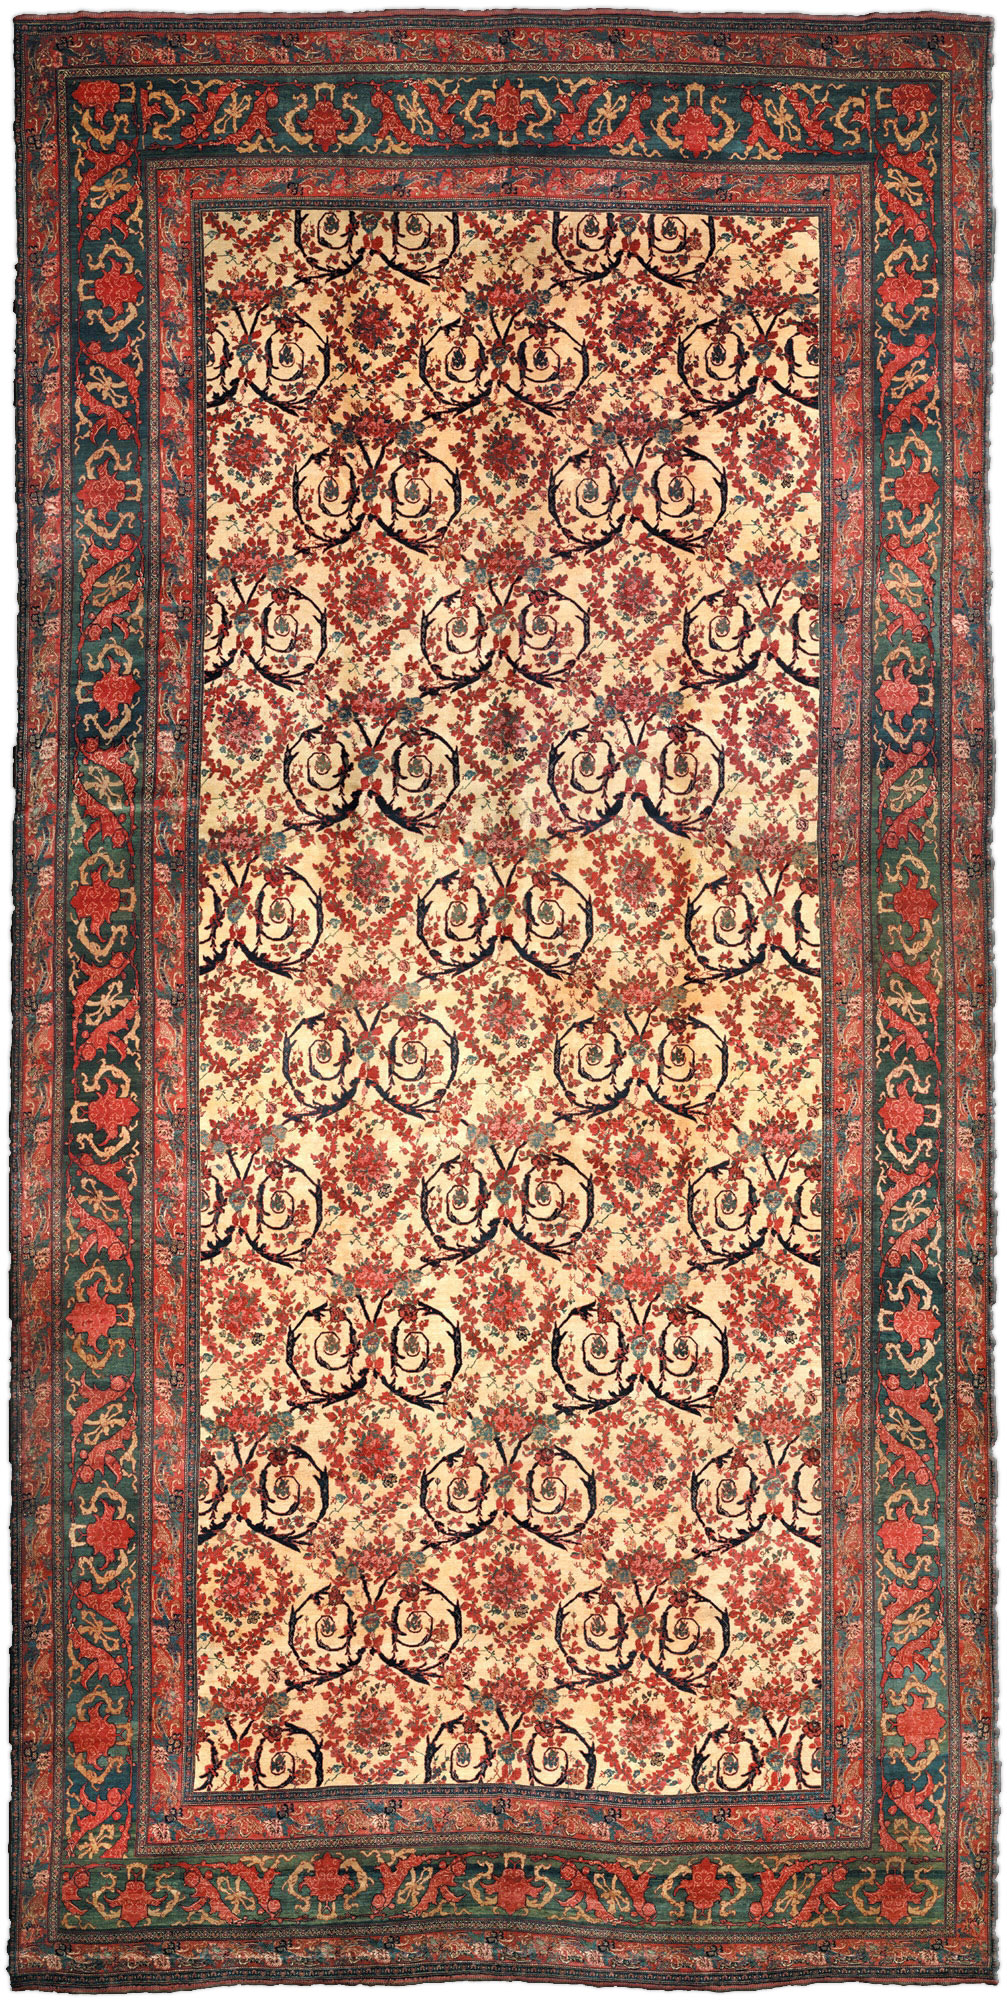 Bidjar Rugs Amp Bijar Carpets For Sale Iran Antique